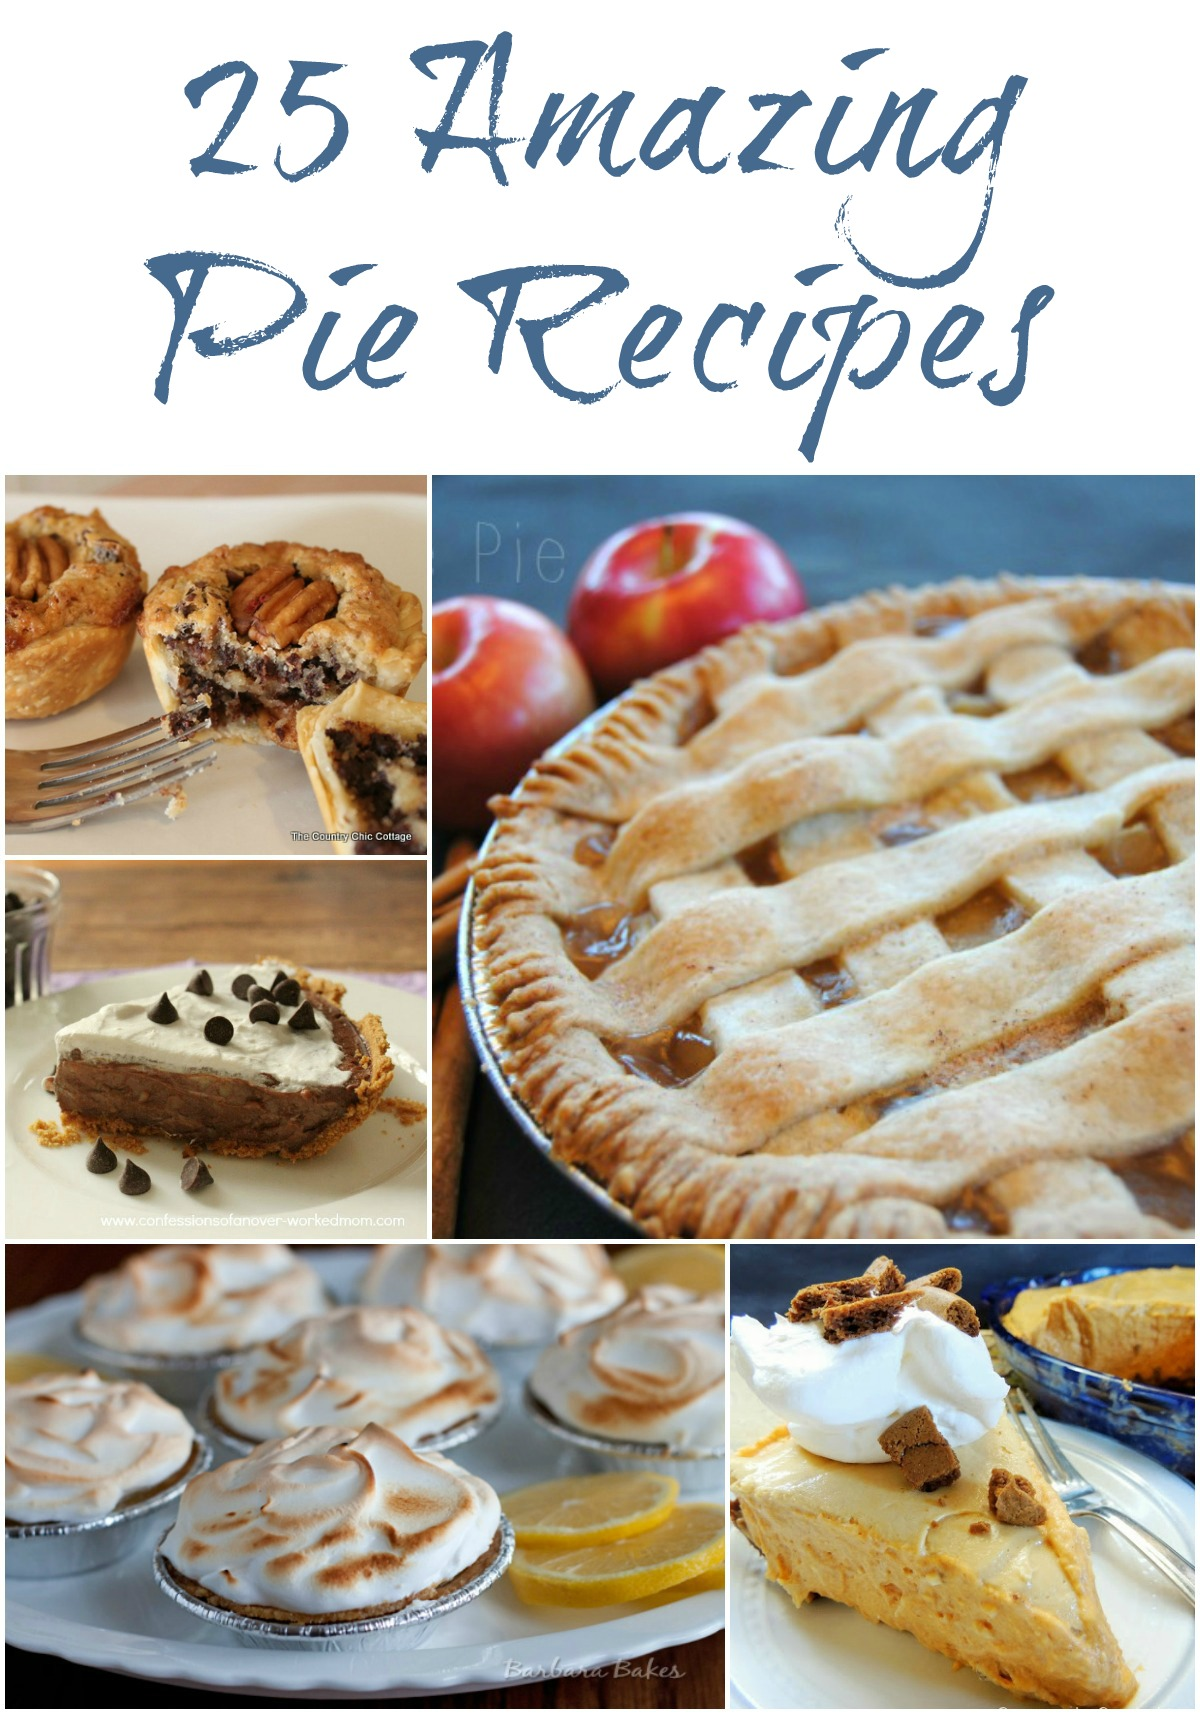 Pie Recipes -- over 25 ways to enjoy pie!